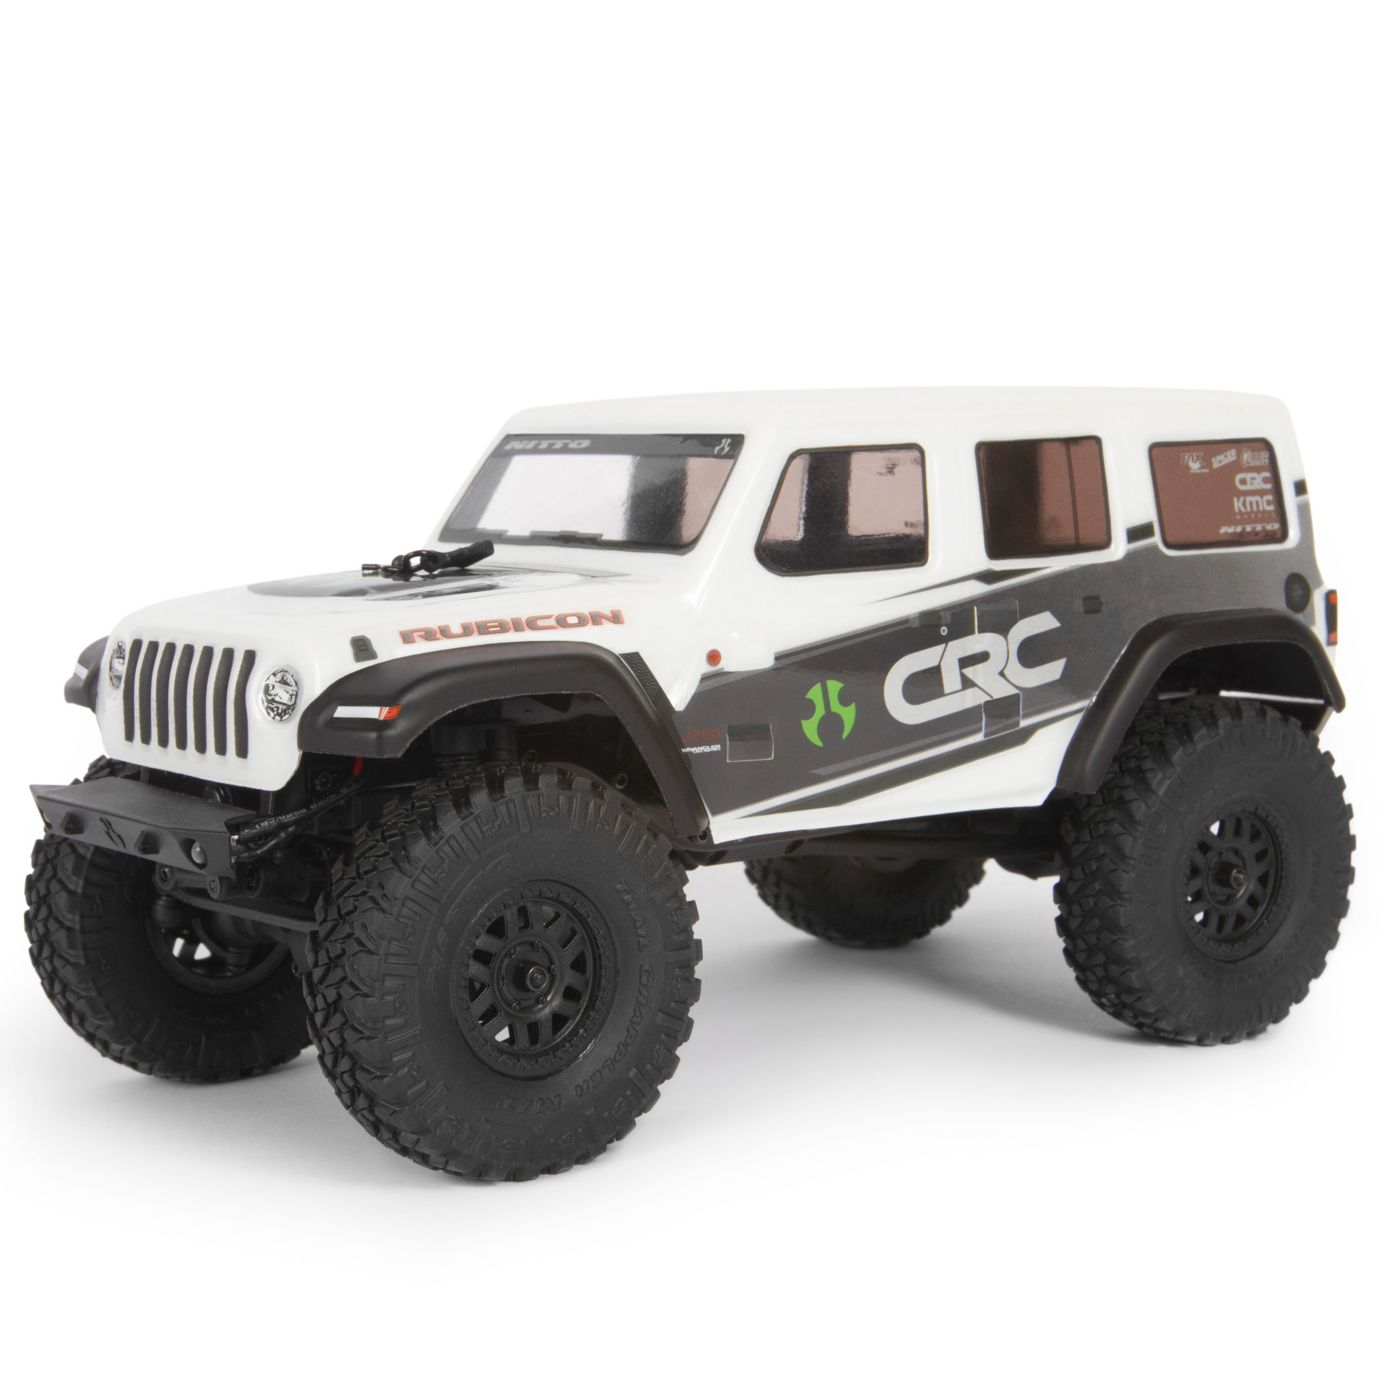 Axial 1/24 SCX24 2019 Jeep Wrangler JLU CRC Rock Crawler RTR - White AXI00002T1